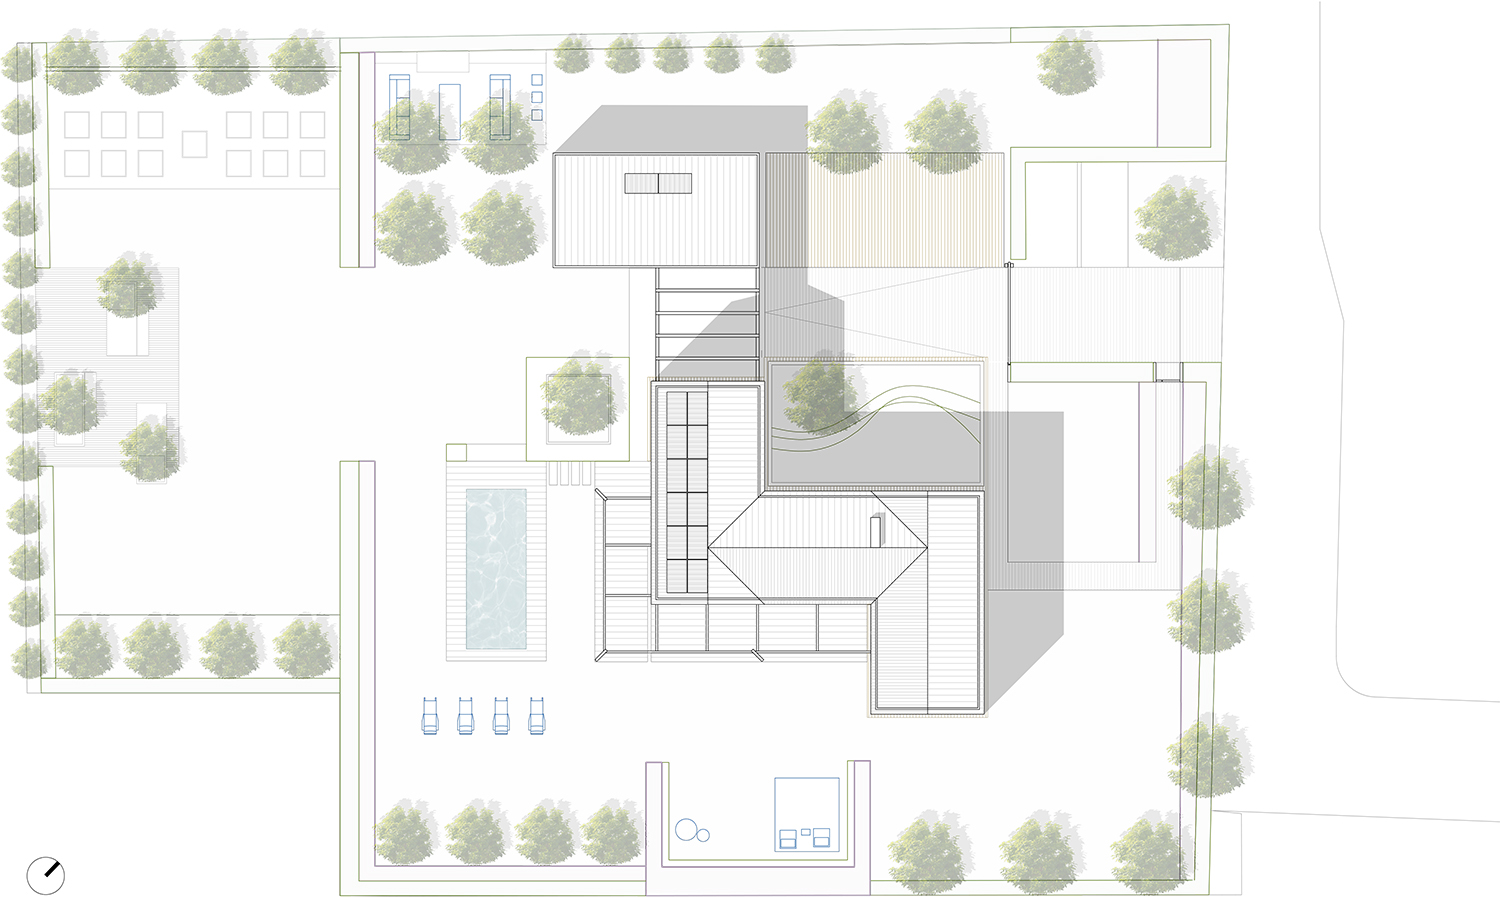 Masterplan - Outdoor and Indoor rooms NAT OFFICE - christian gasparini architect}